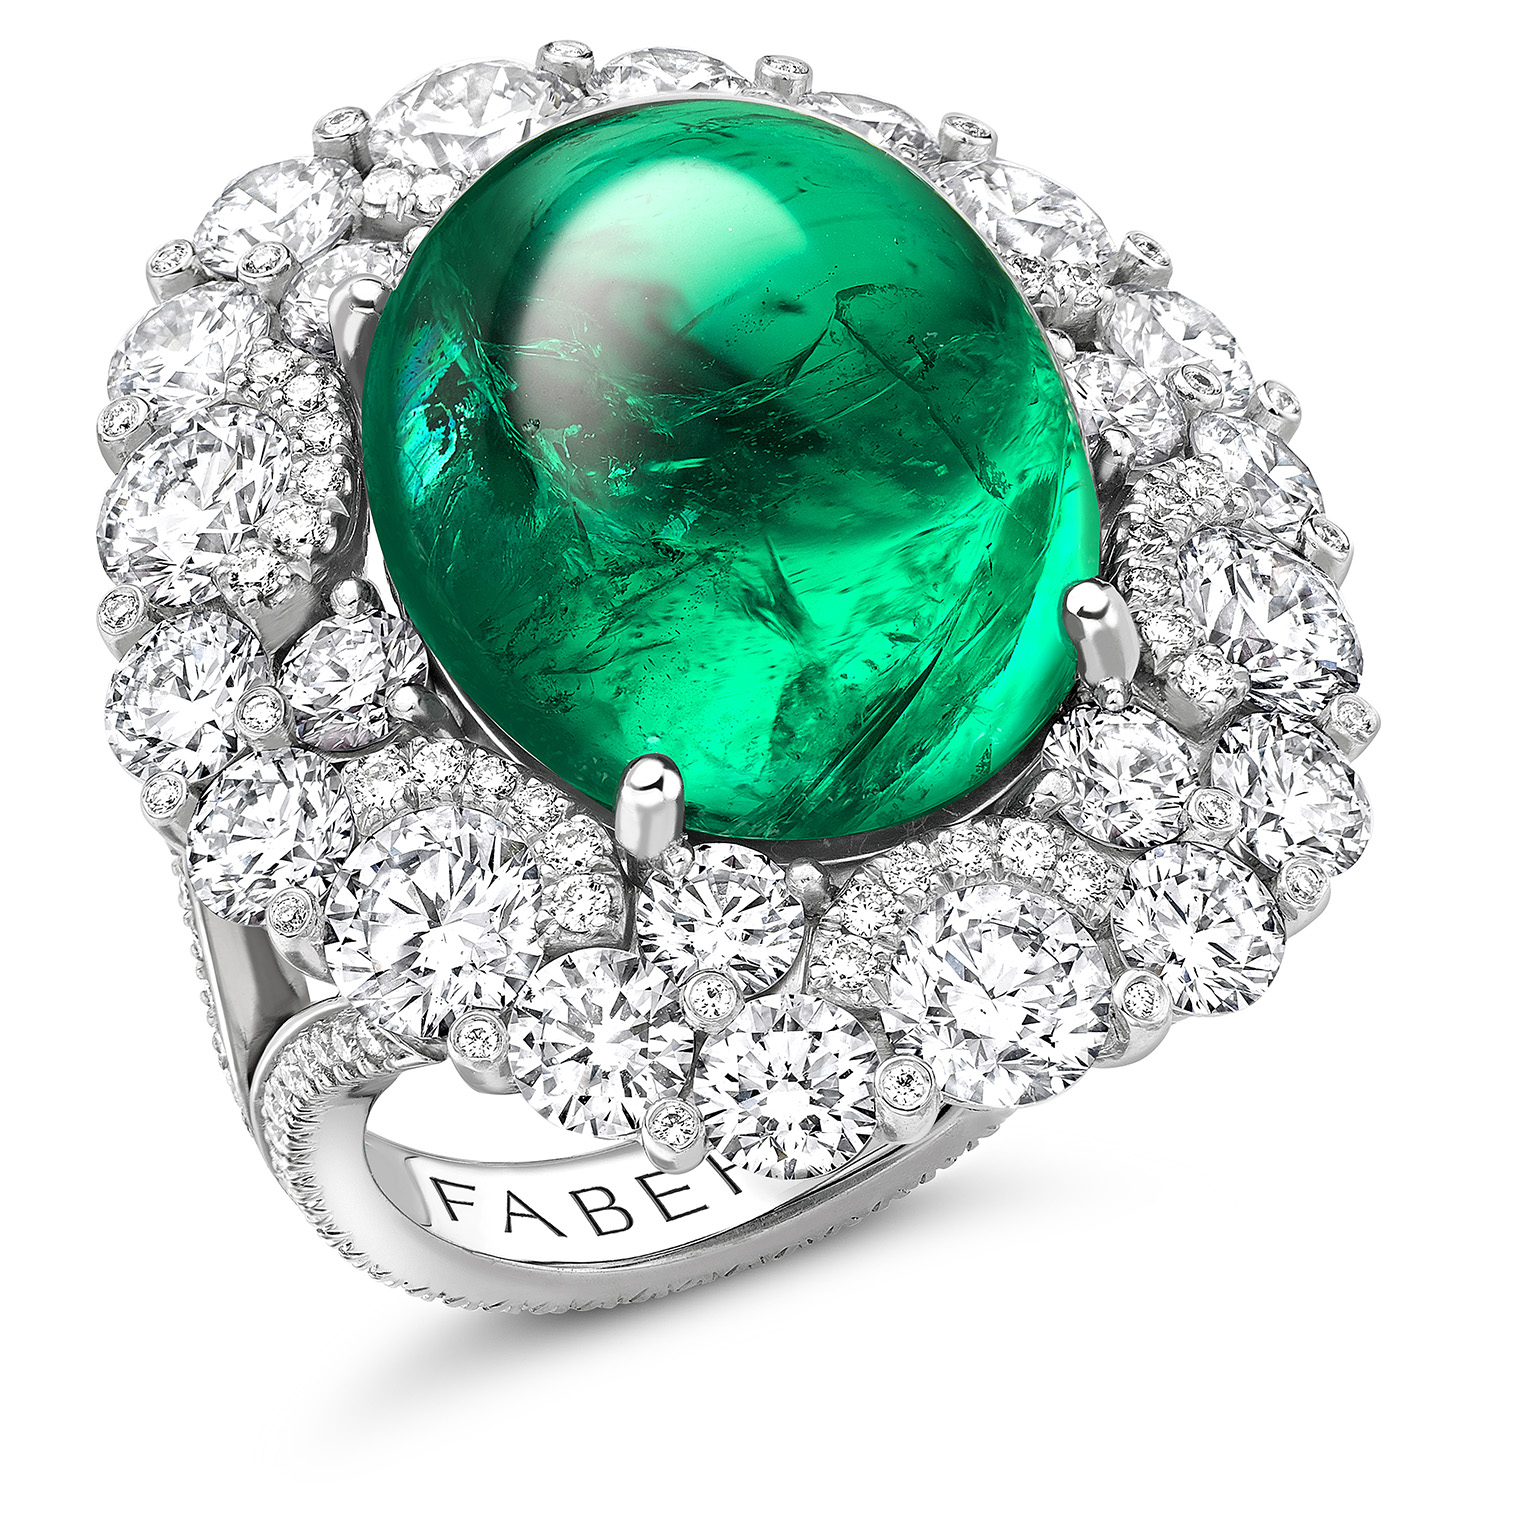 Platinum Cabochon Emerald Halo Ring Set With Diamonds | Fabergé